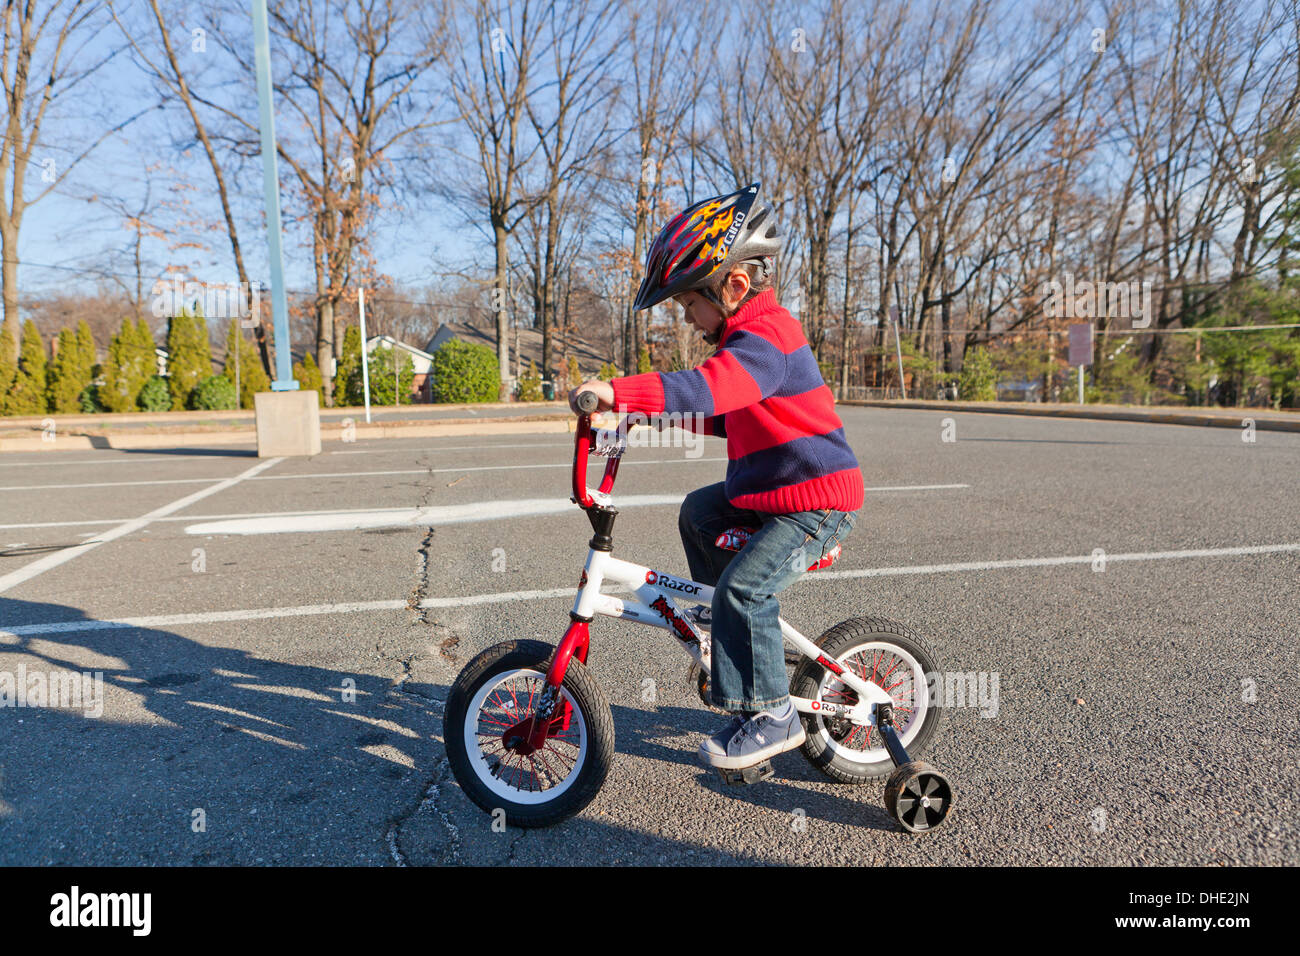 0ec08c62f5d Asian boy 3 years old, riding bicycle with training wheels - Stock Image